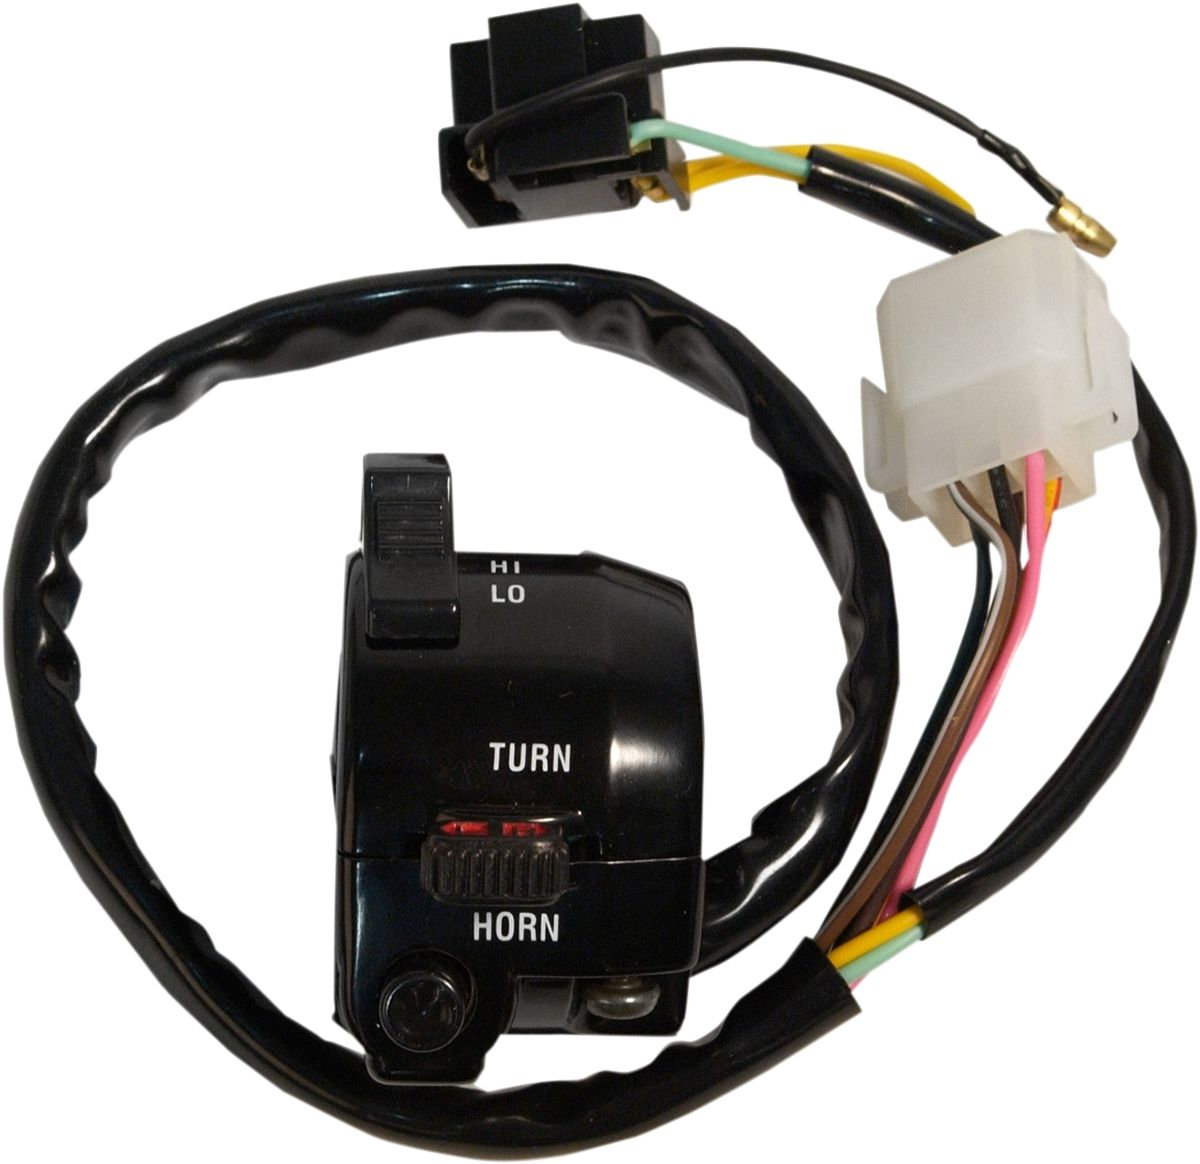 Emgo handlebar switch 46-68850.